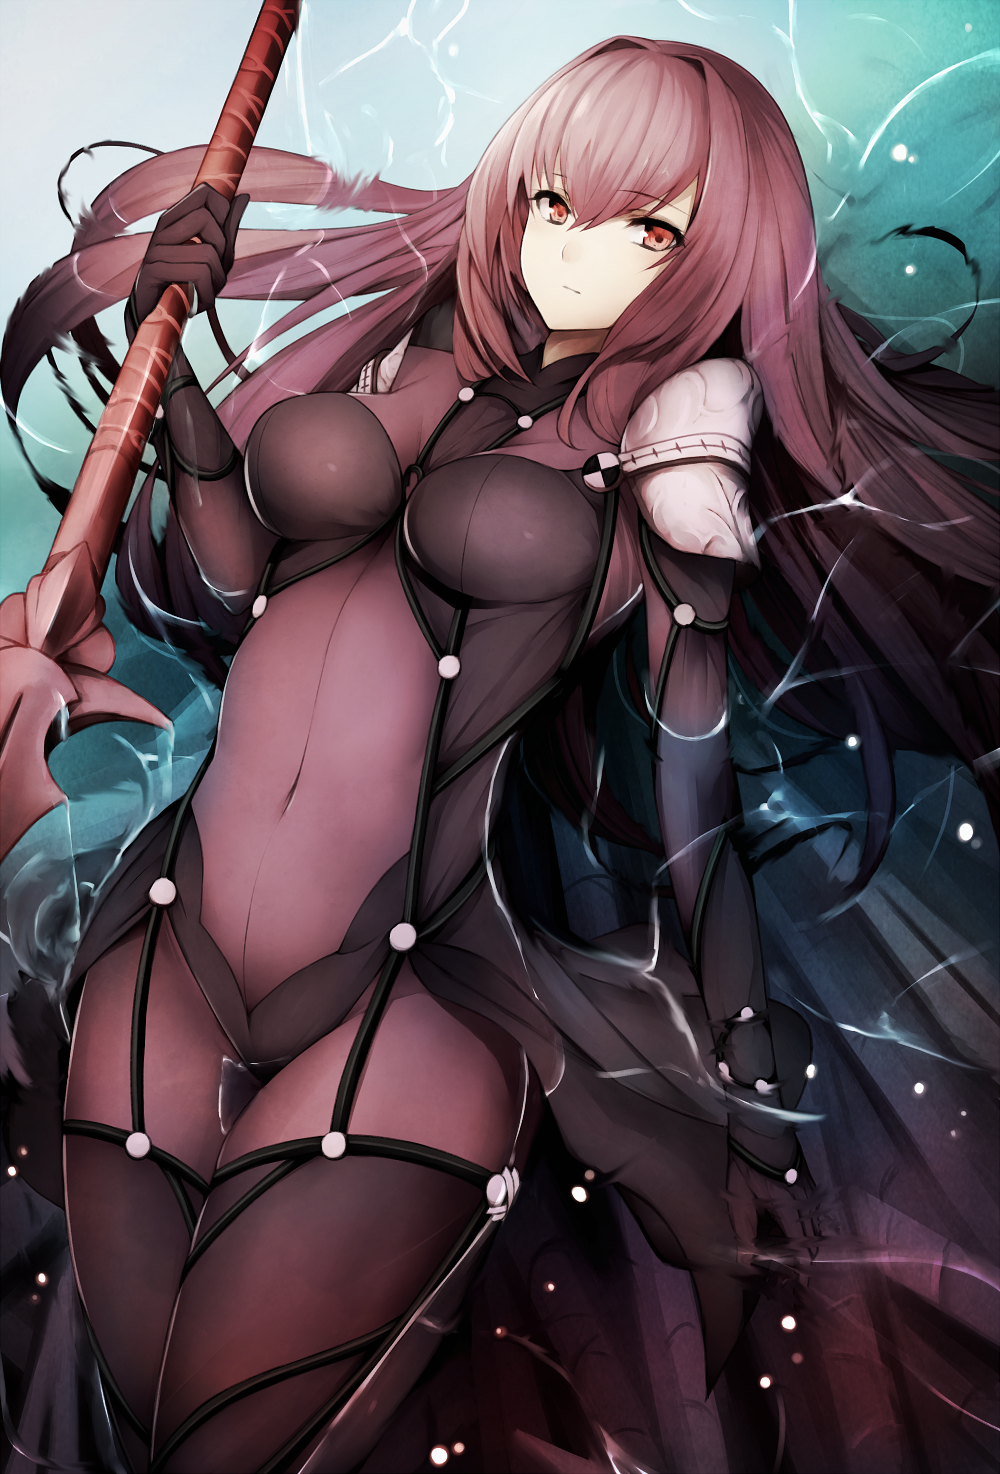 1girl afloat bangs bodysuit breasts closed_mouth covered_navel eyebrows_visible_through_hair fate/grand_order fate_(series) gae_bolg hair_between_eyes highres holding holding_weapon inaba_sunimi lance large_breasts legs_together long_hair looking_at_viewer partially_submerged polearm purple_bodysuit purple_hair red_eyes revision scathach_(fate)_(all) scathach_(fate/grand_order) shoulder_armor solo spaulders water weapon